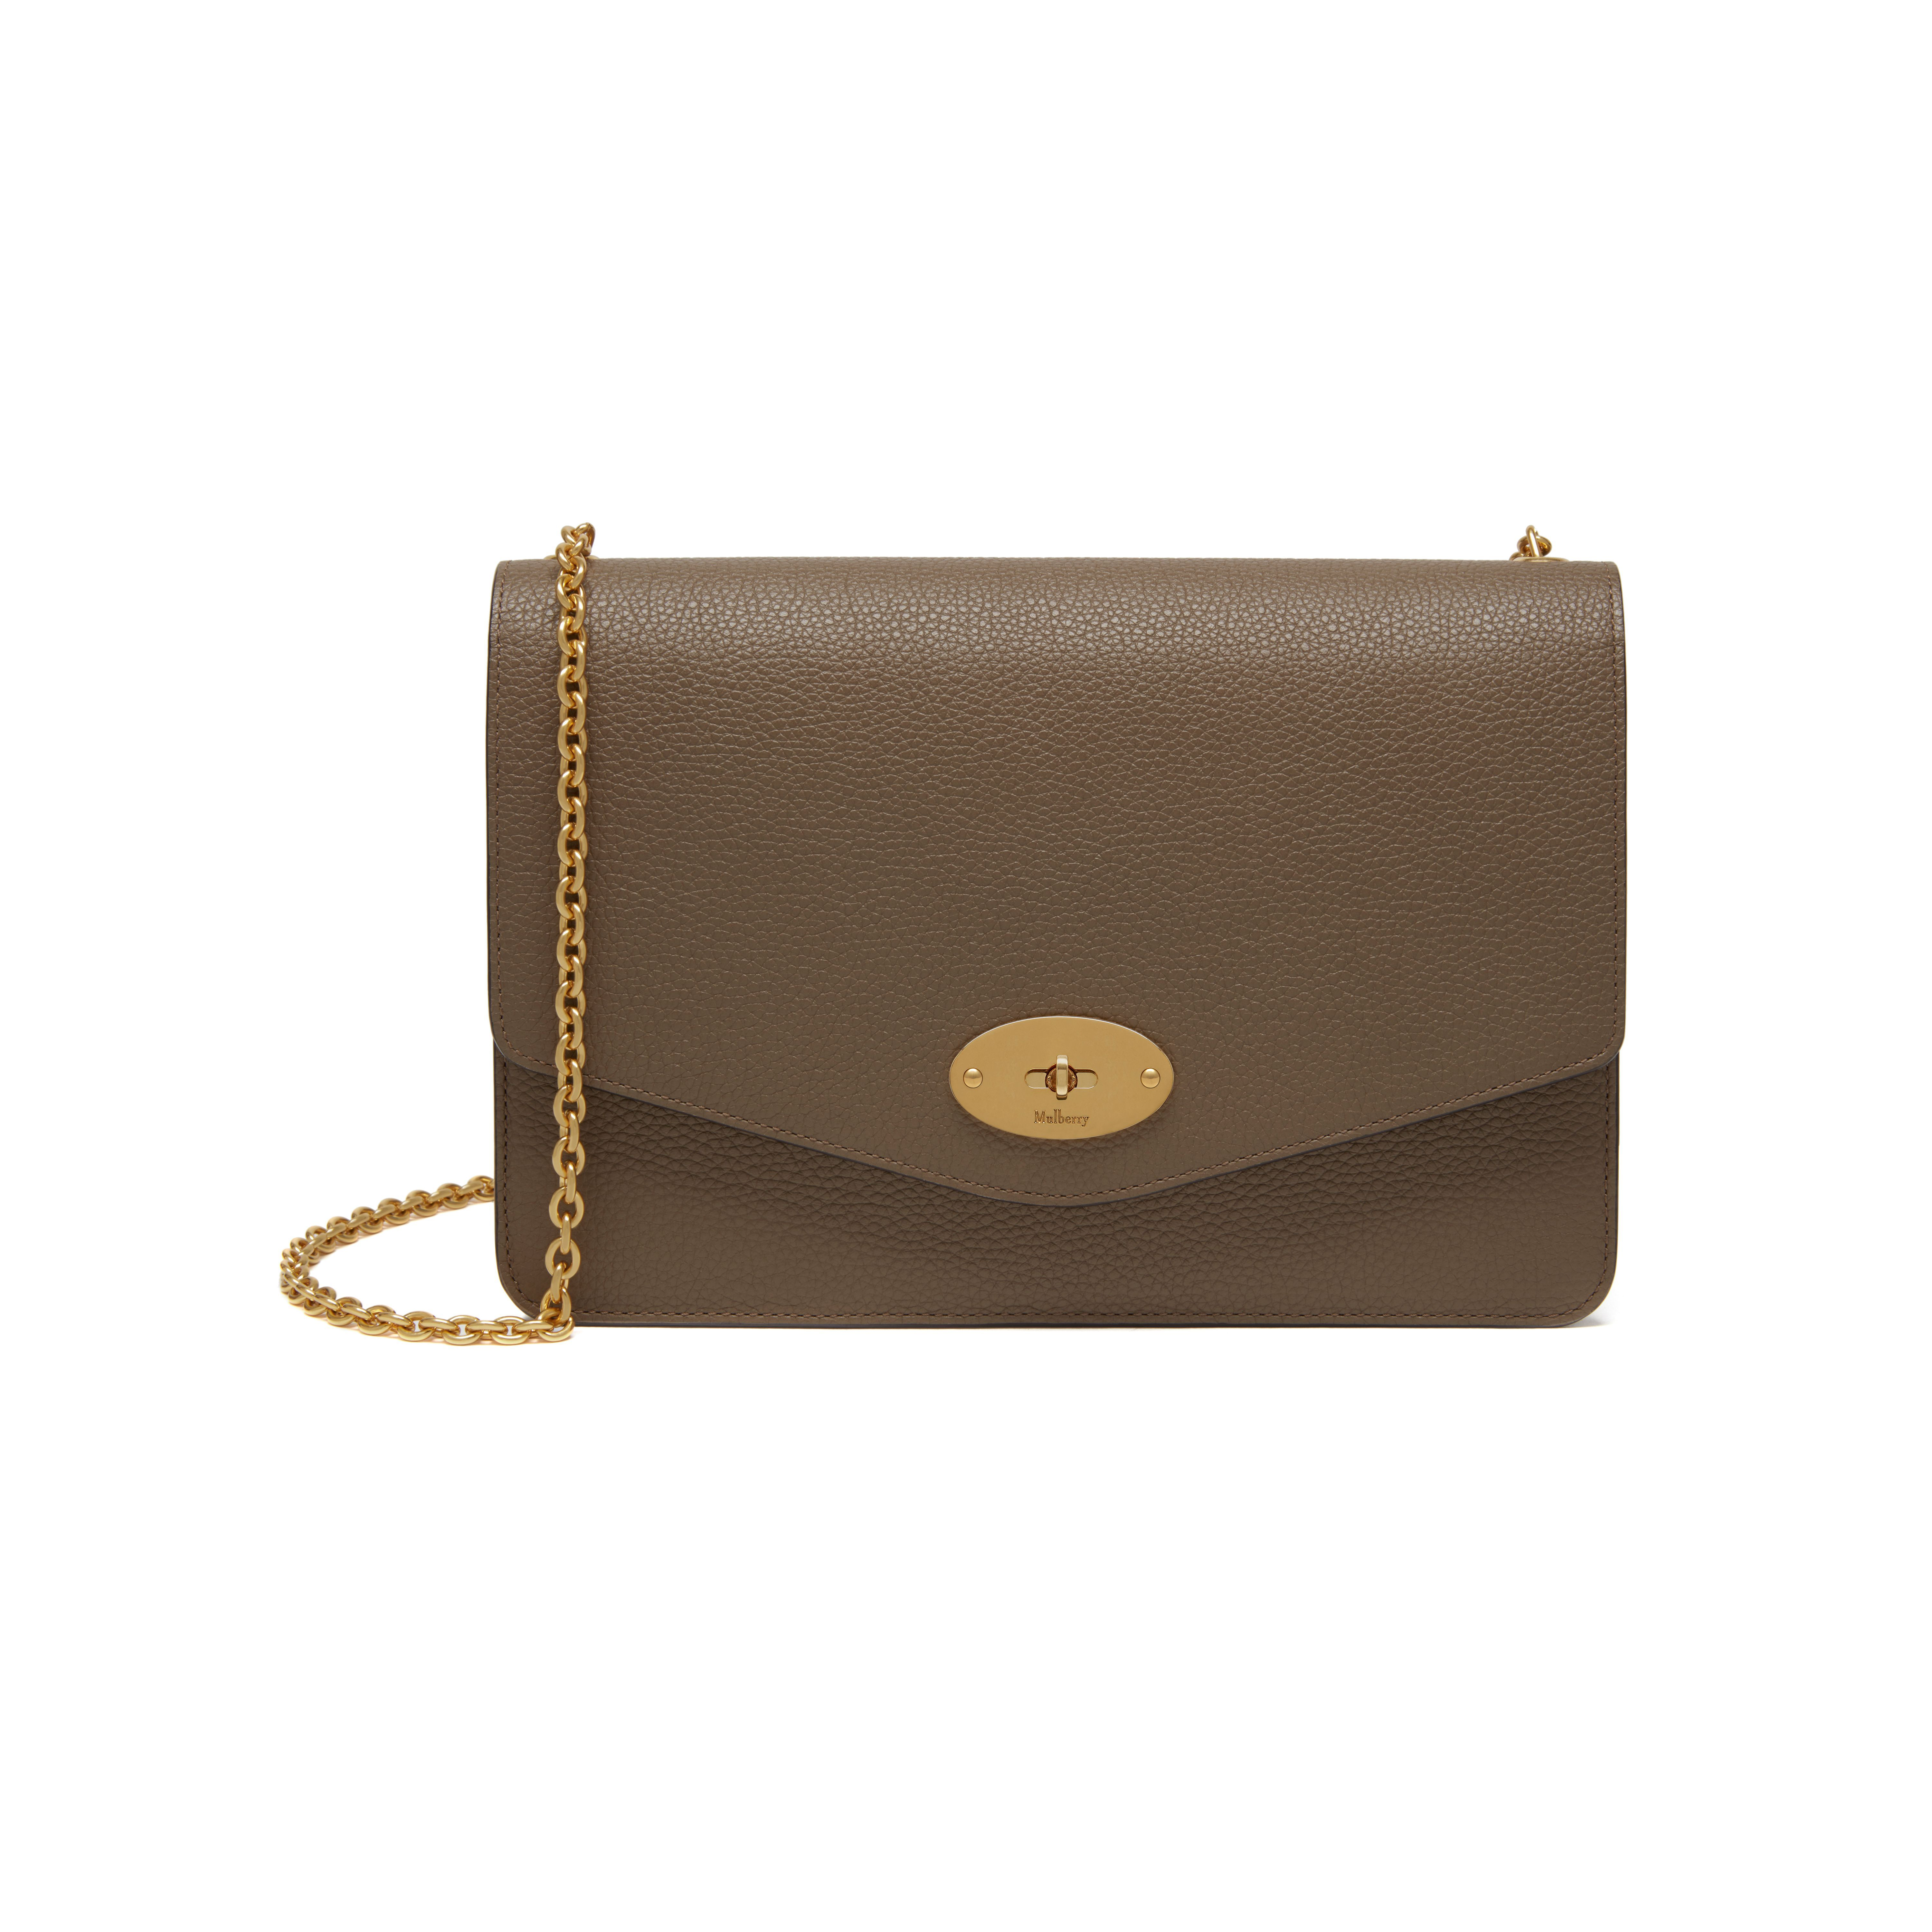 Shop the Darley in Clay Small Classic Grain Leather at Mulberry.com. A  classic clutch d314172ac0028